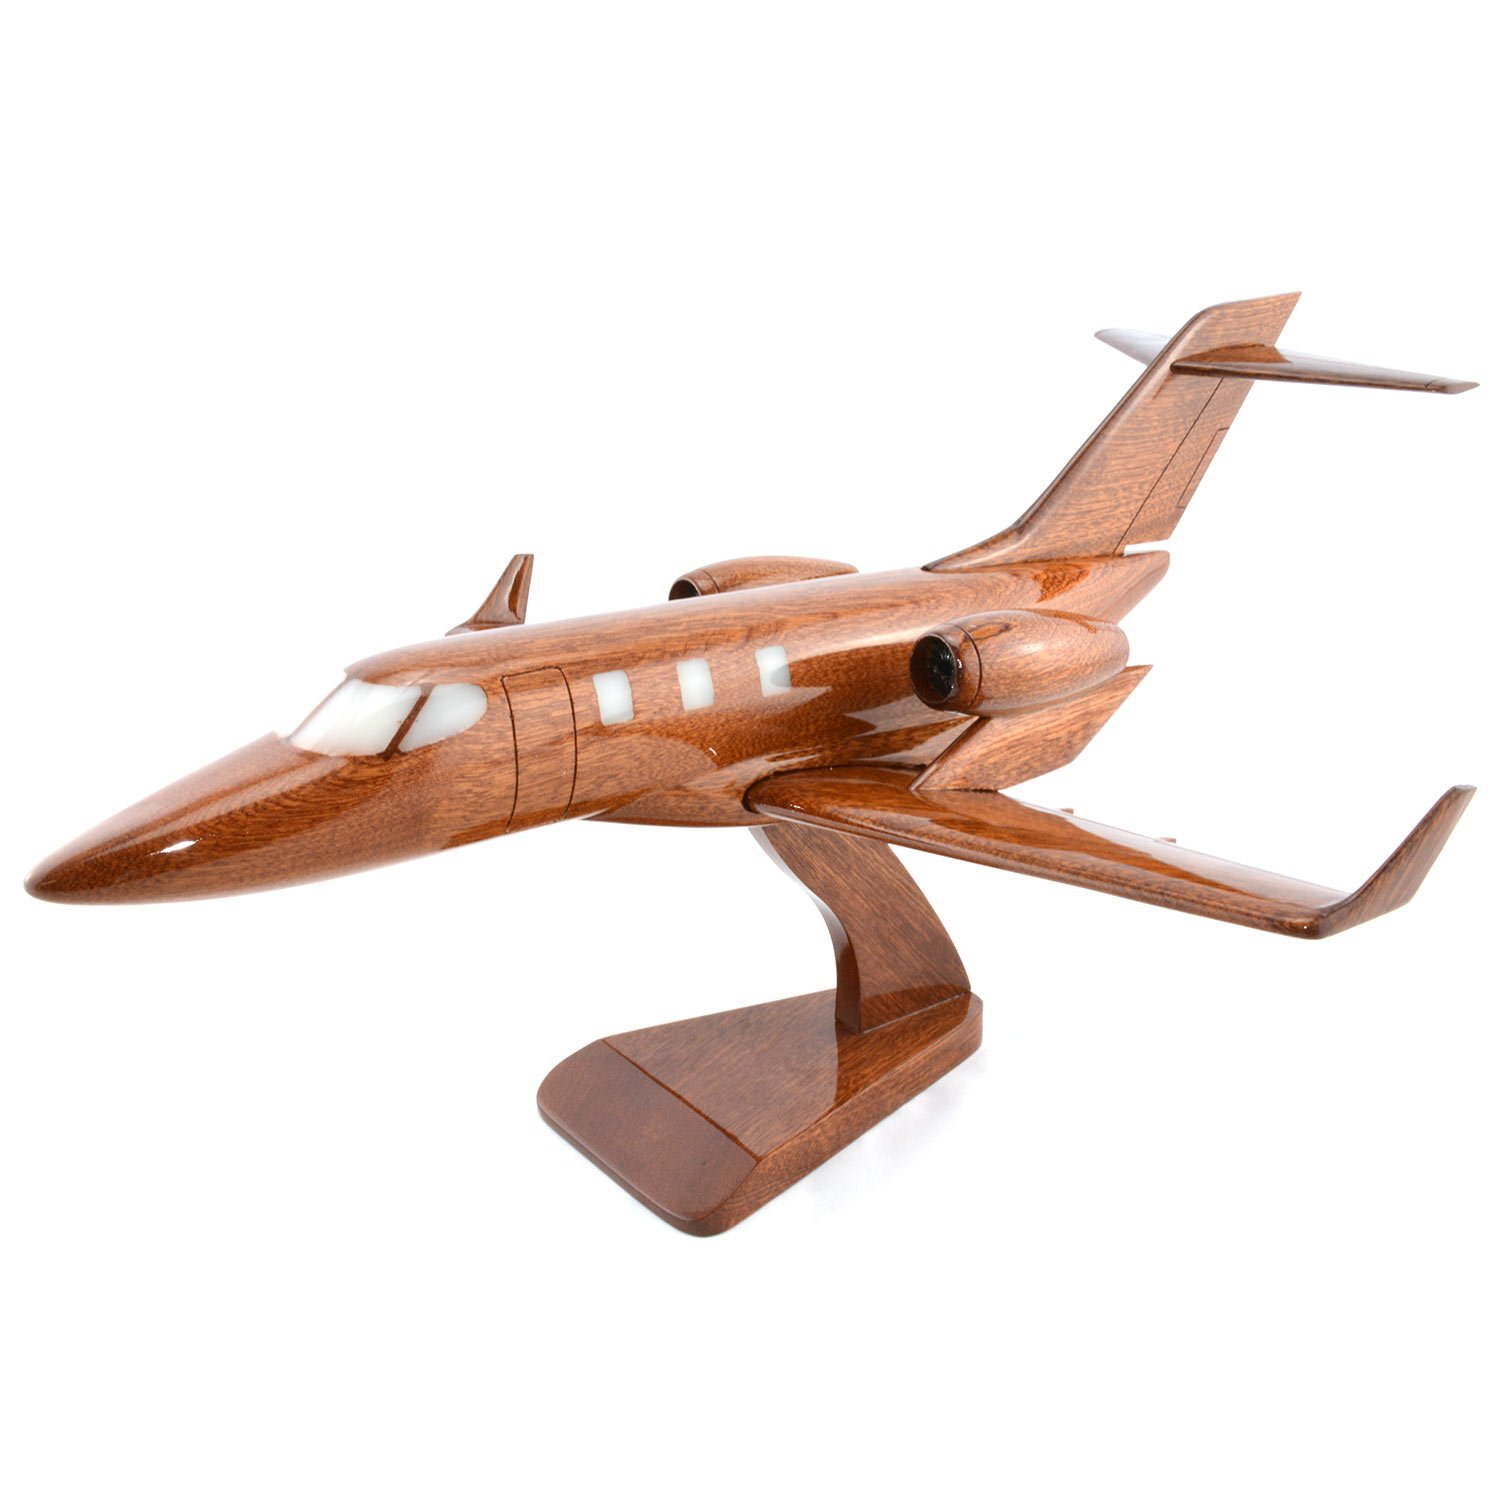 Shopping Zone Plus Boeing Honda Jet Wooden Airplane Big Model with Engraving Option, the Model Plane Includes Desk Stand